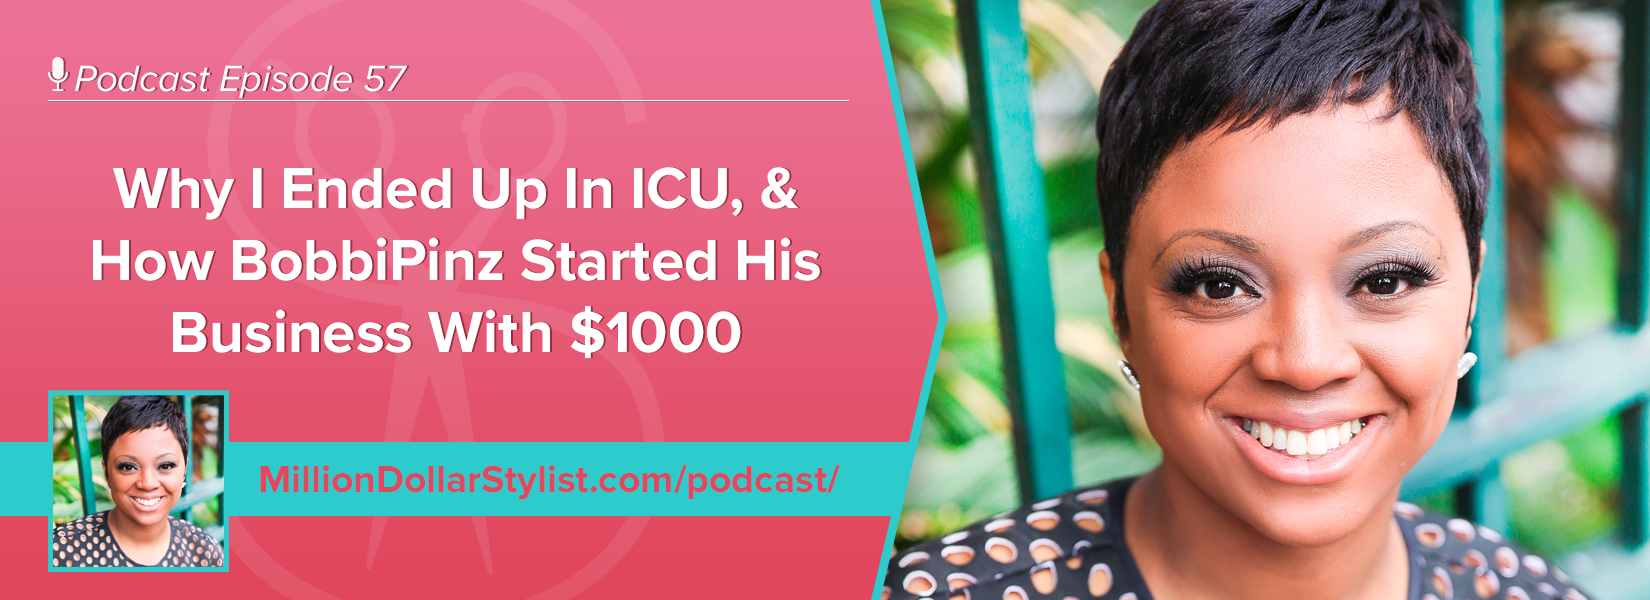 Episode 057 –  Why I Ended Up In ICU, & How BobbiPinz Started His Business With $1000 1